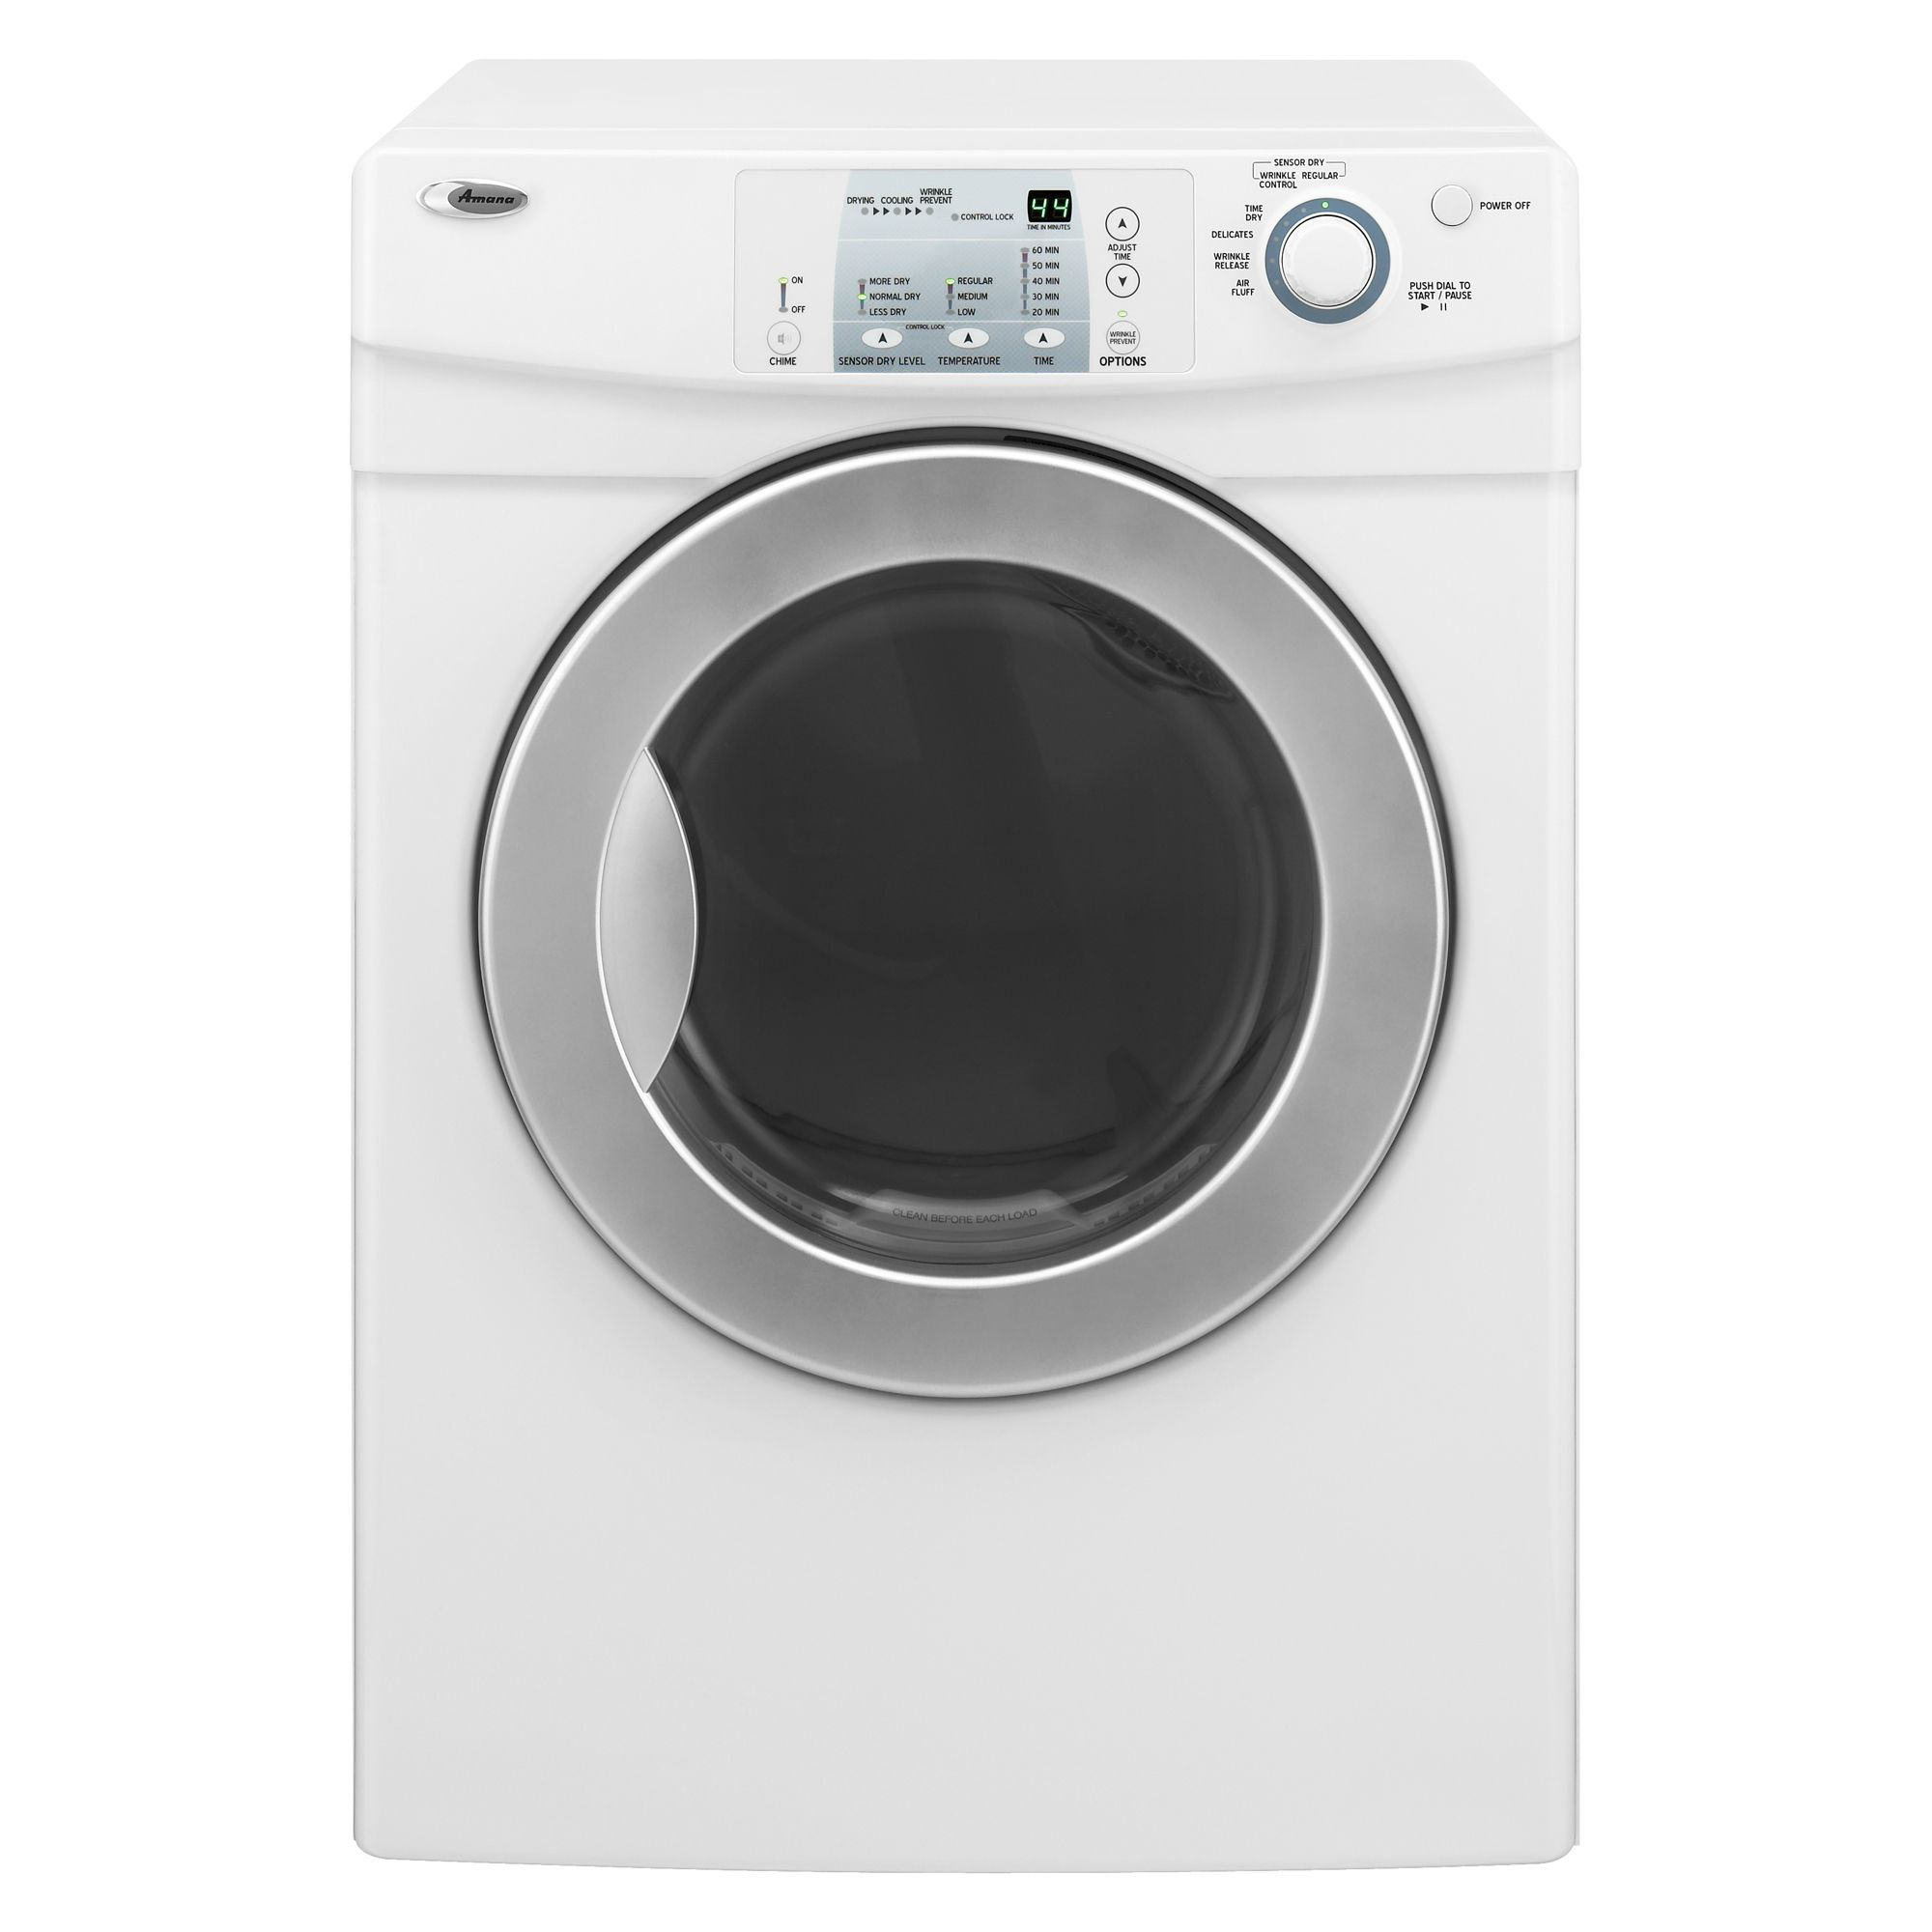 Amana Electric Dryer 7.1 Cu. Ft. Ned7200 - Sears